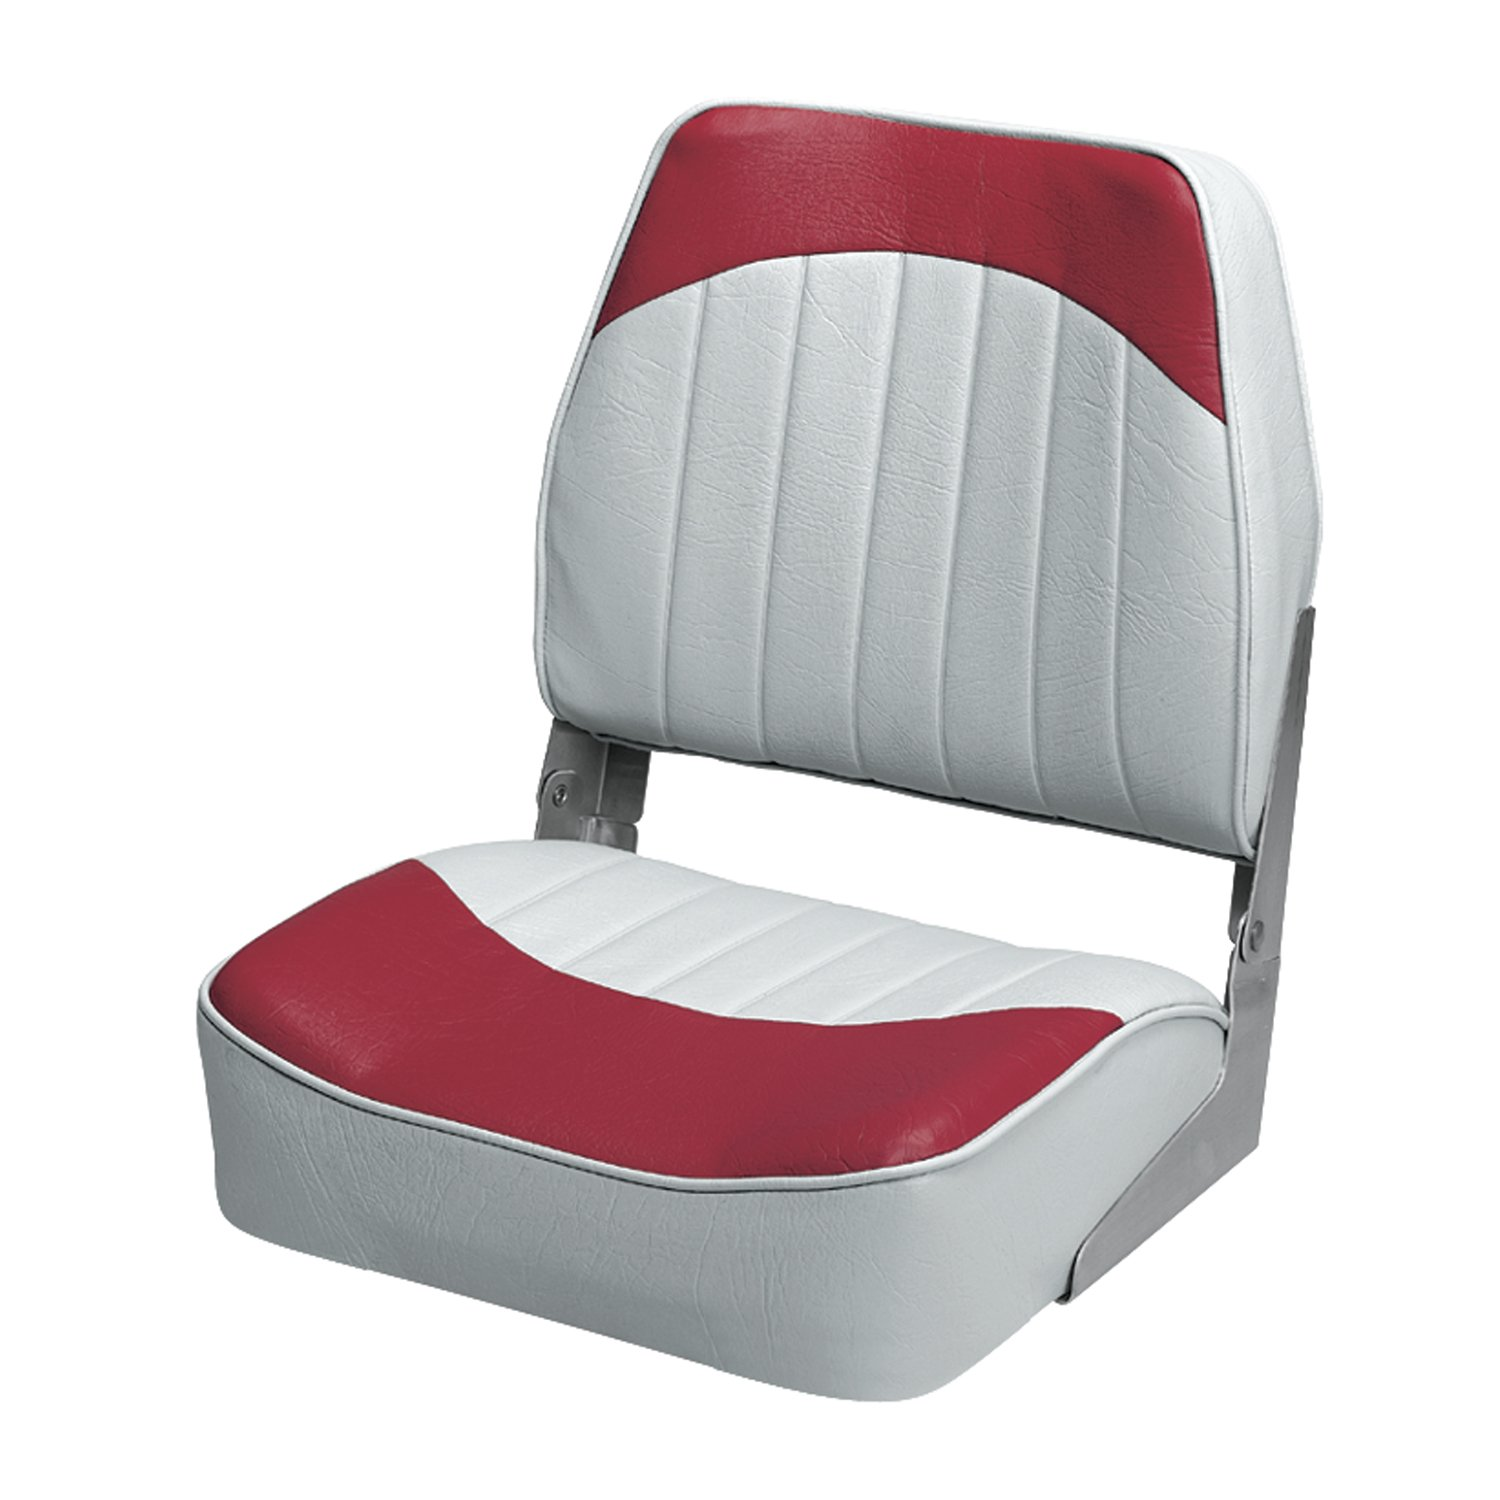 Wise 8WD734PLS-661 Low Back Boat Seat, Grey/Red by Wise